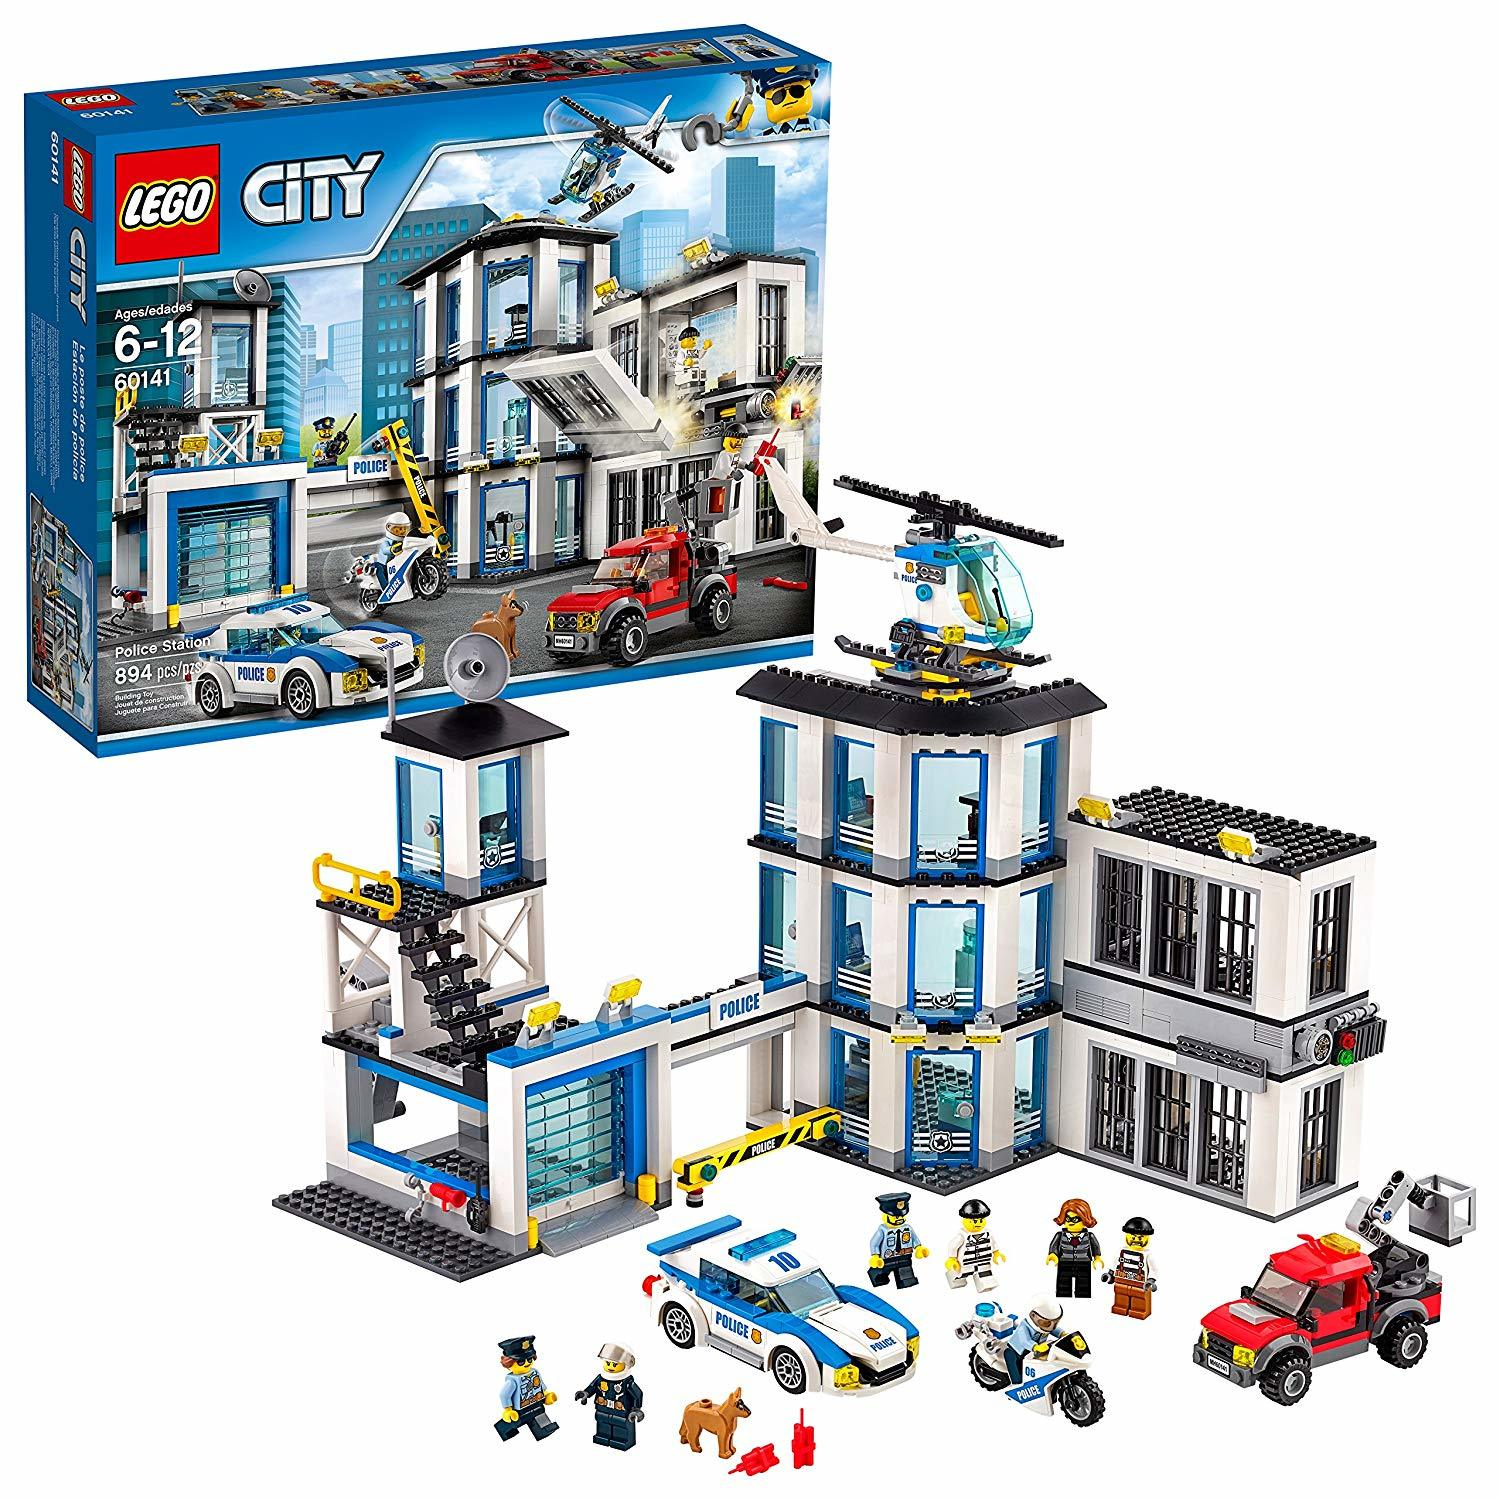 Lego City Police Station 60141 Toy At Mighty Ape Nz